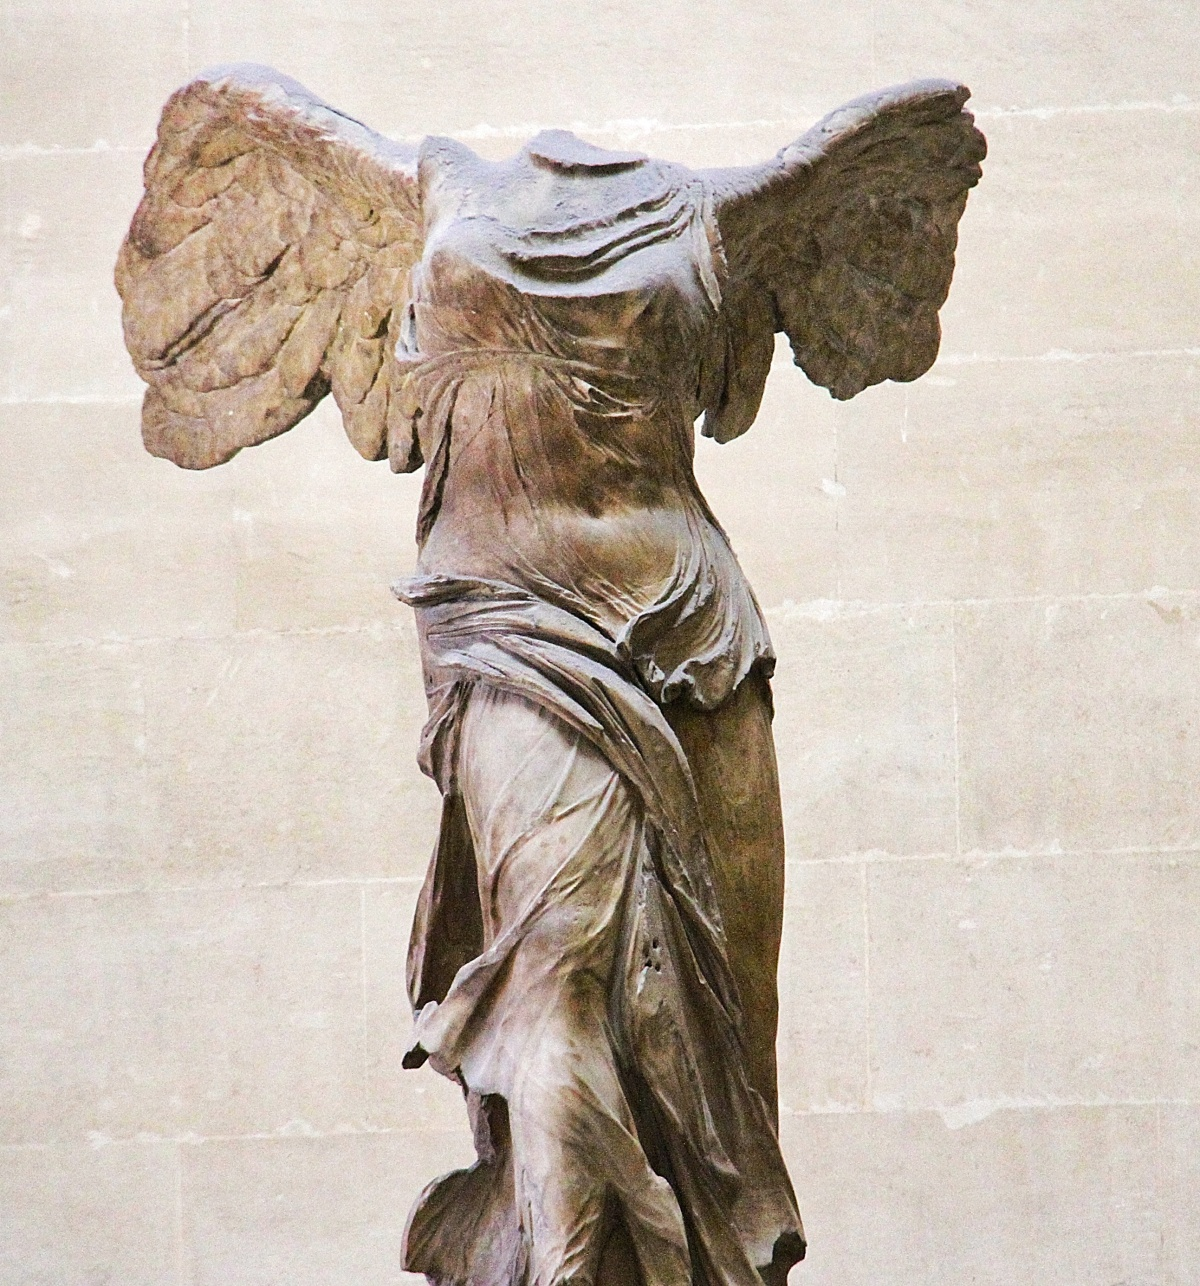 The Winged Victory of Samothrace.  From the second century BCE.  Discovered in 1863.